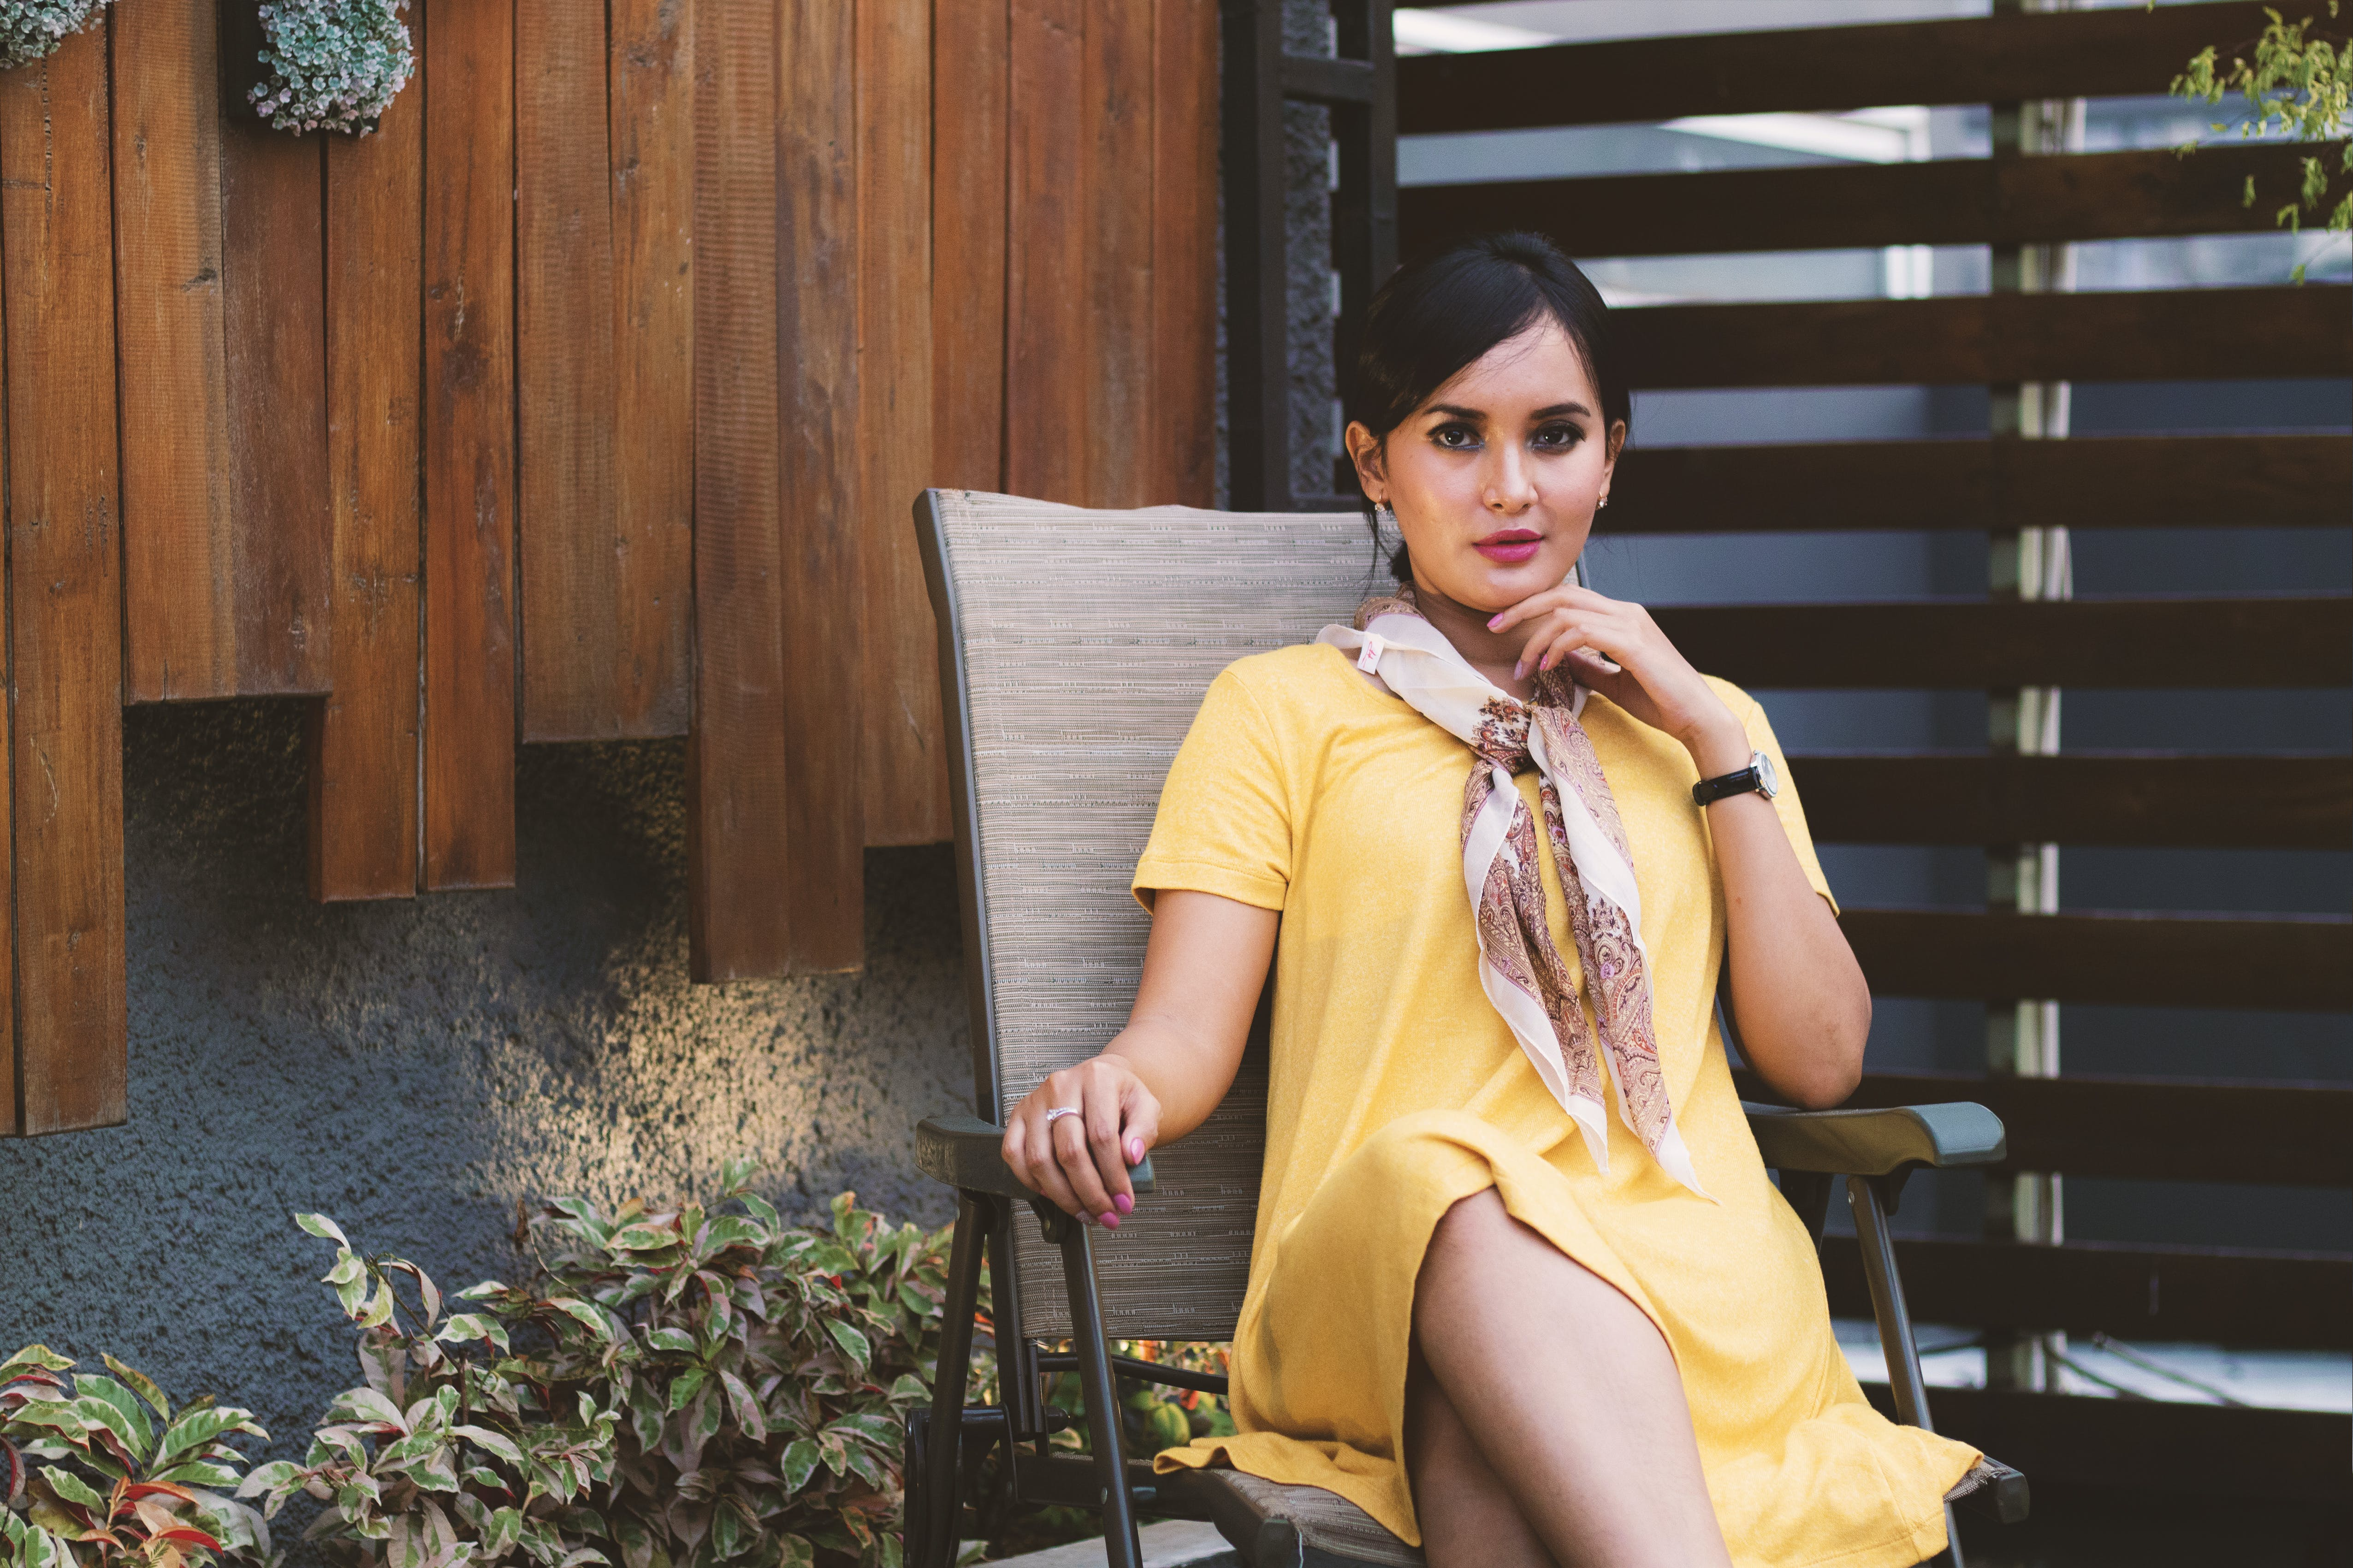 Woman Wearing Yellow Short-sleeved dress Sitting on Black Metal Armchair